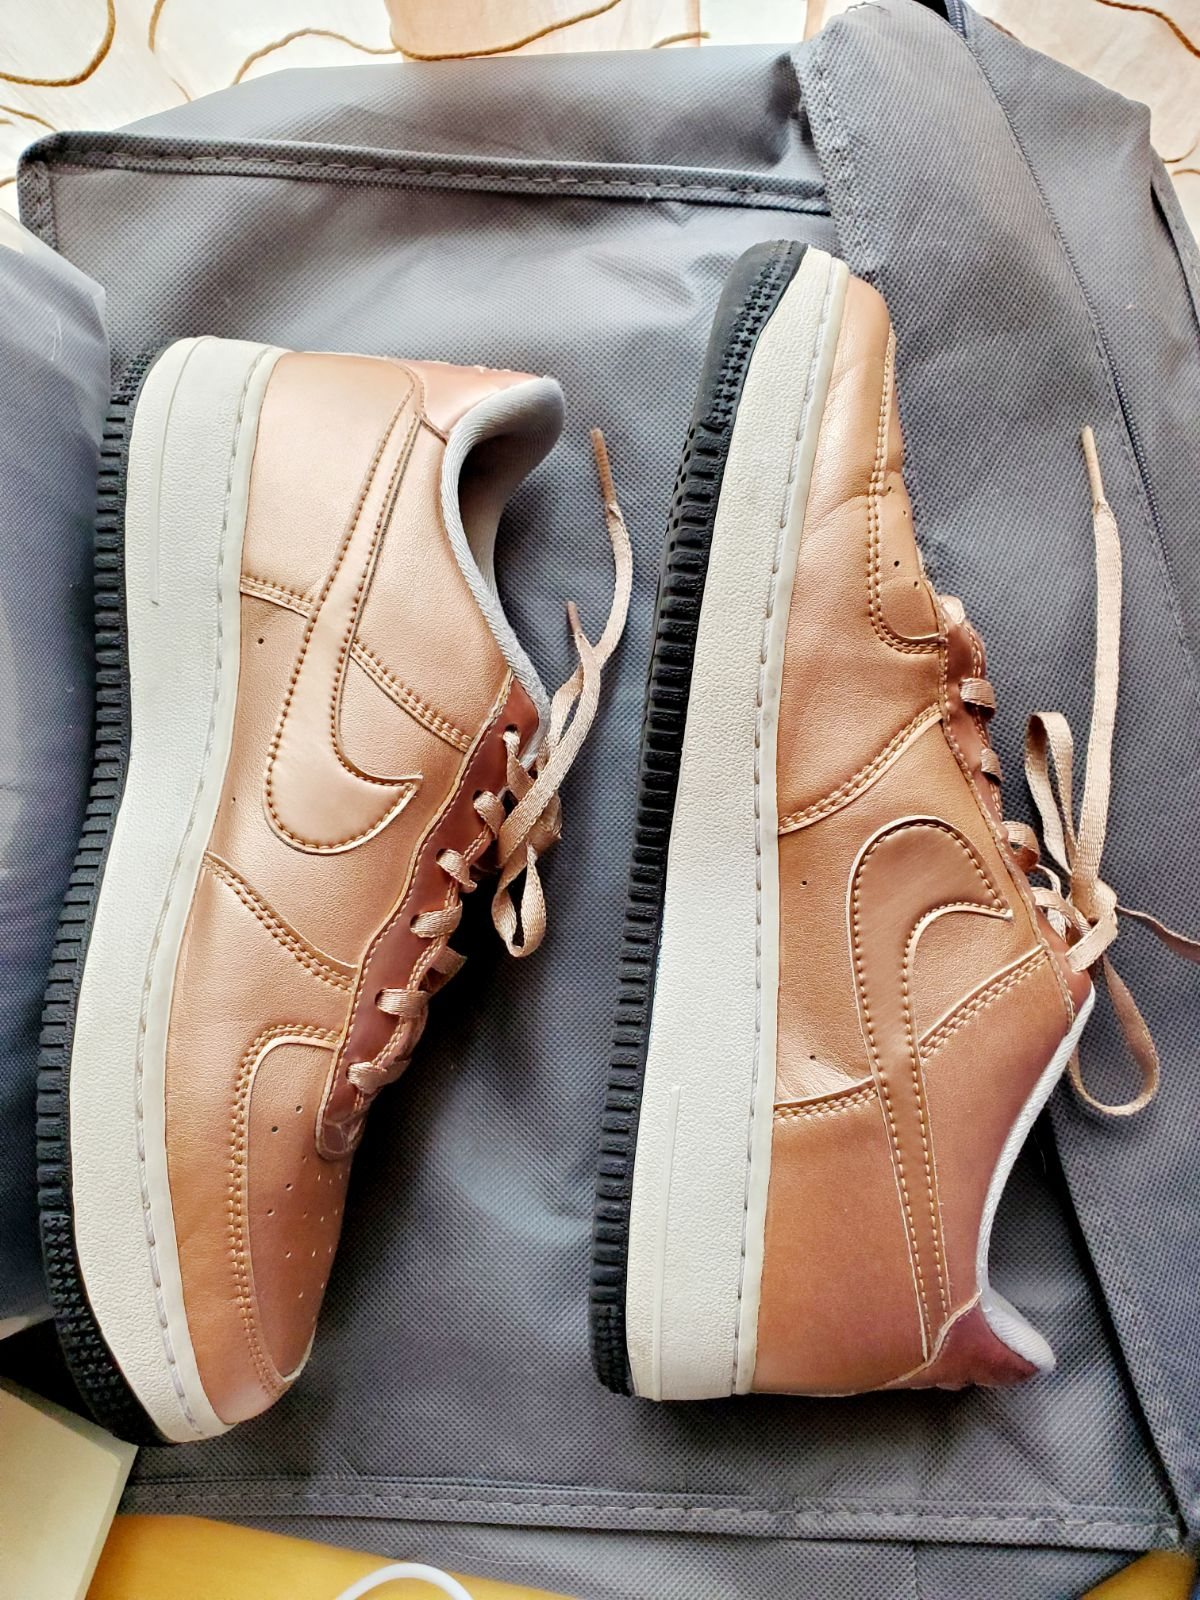 Nike Air Force 1 Copper Metallic Shoes